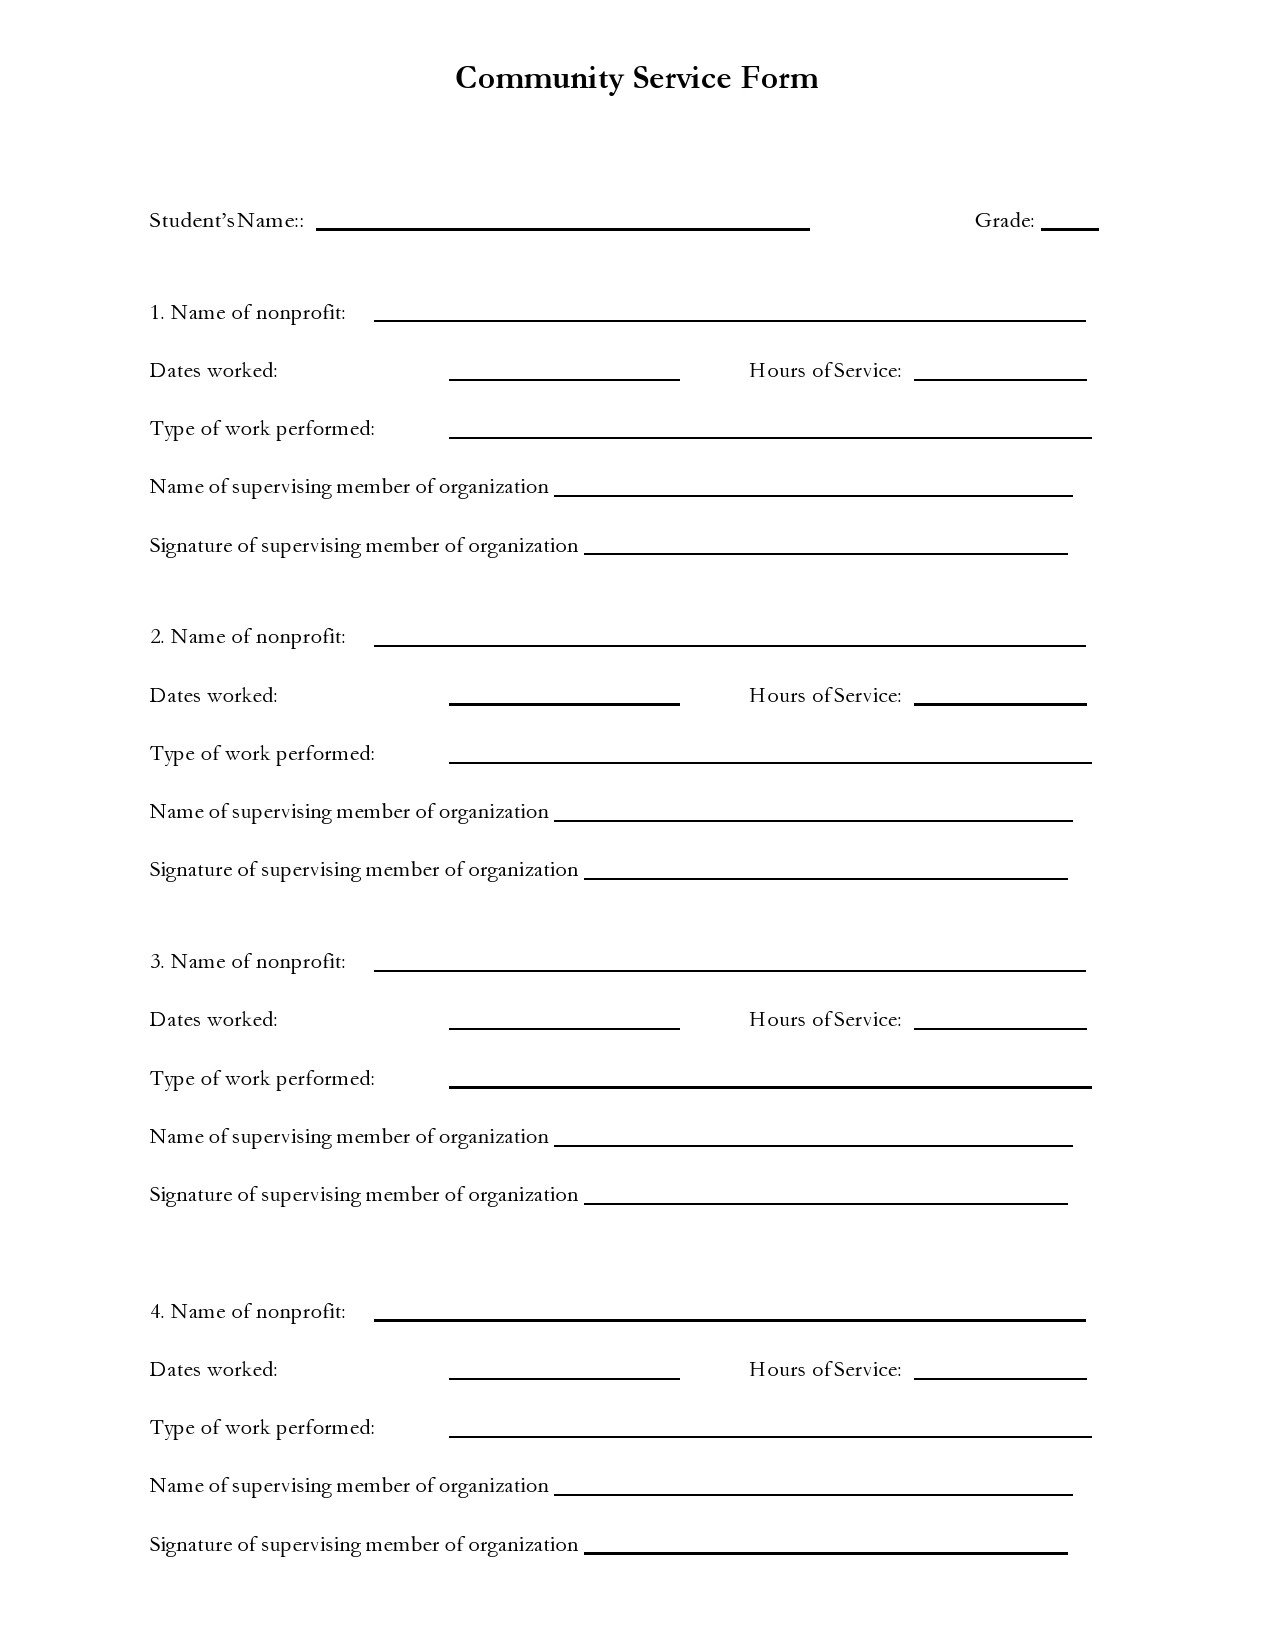 Free community service form 42